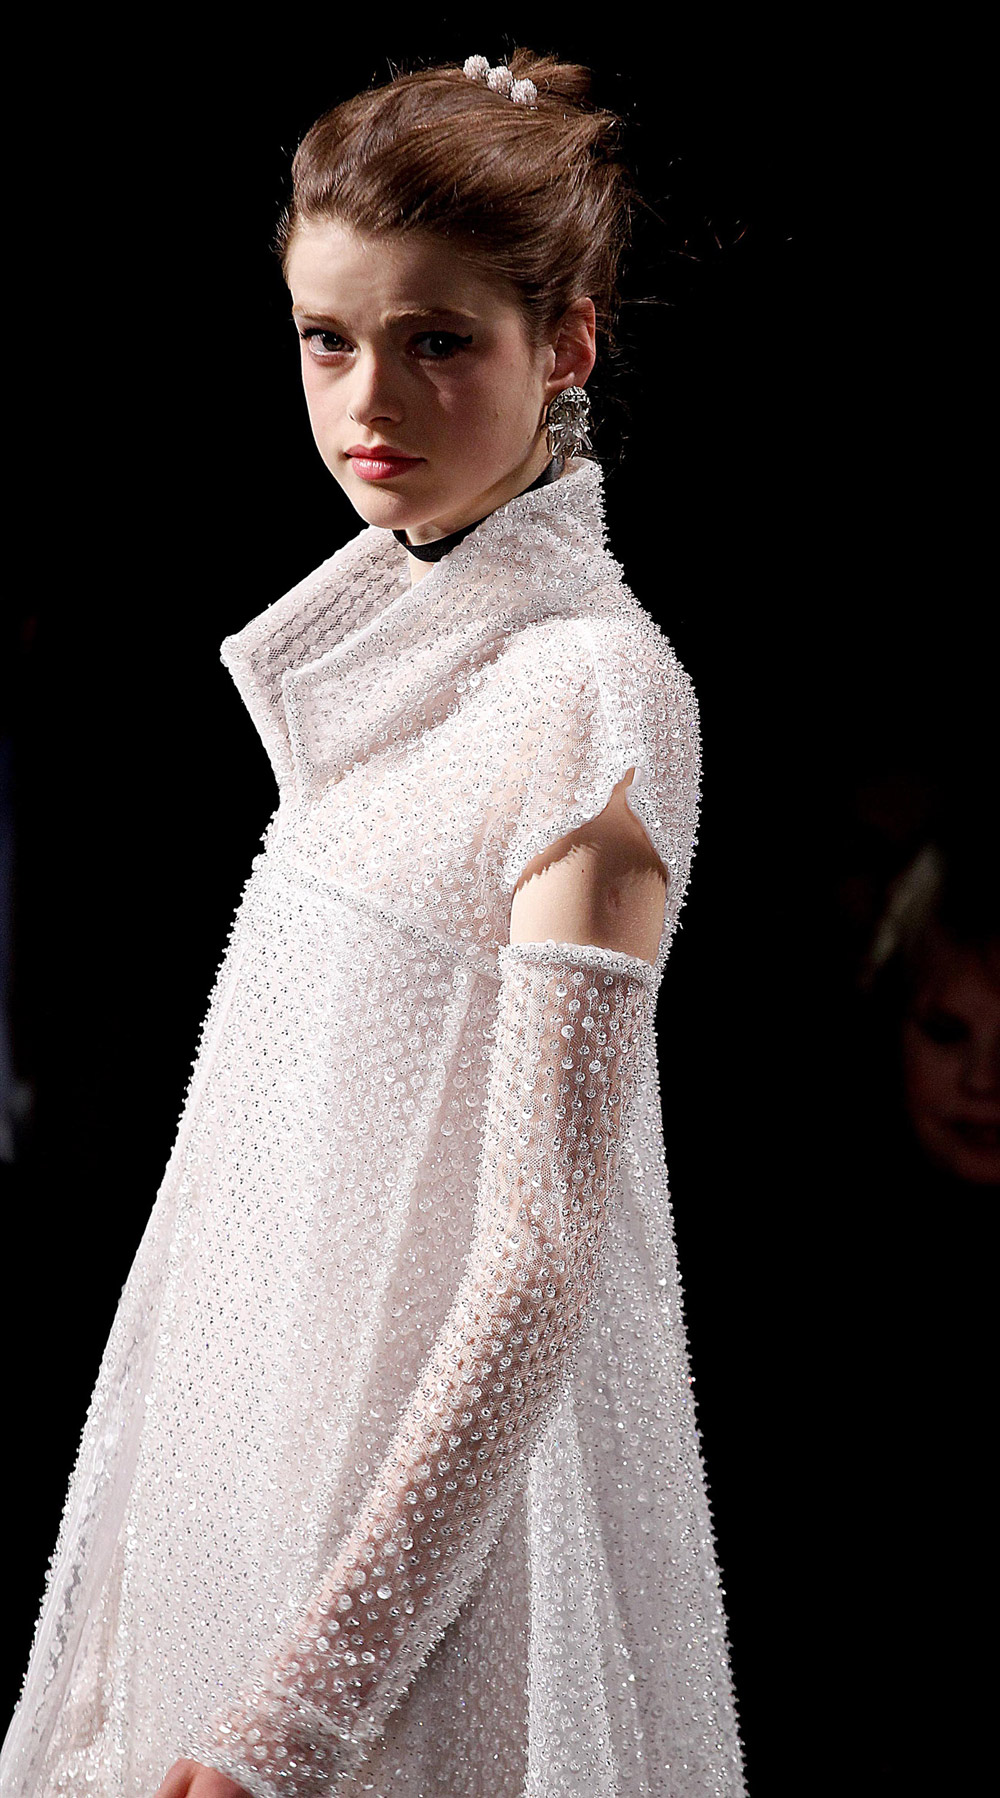 Diamonds wood chanel haute couture s s 2011 details part ii for The history of haute couture